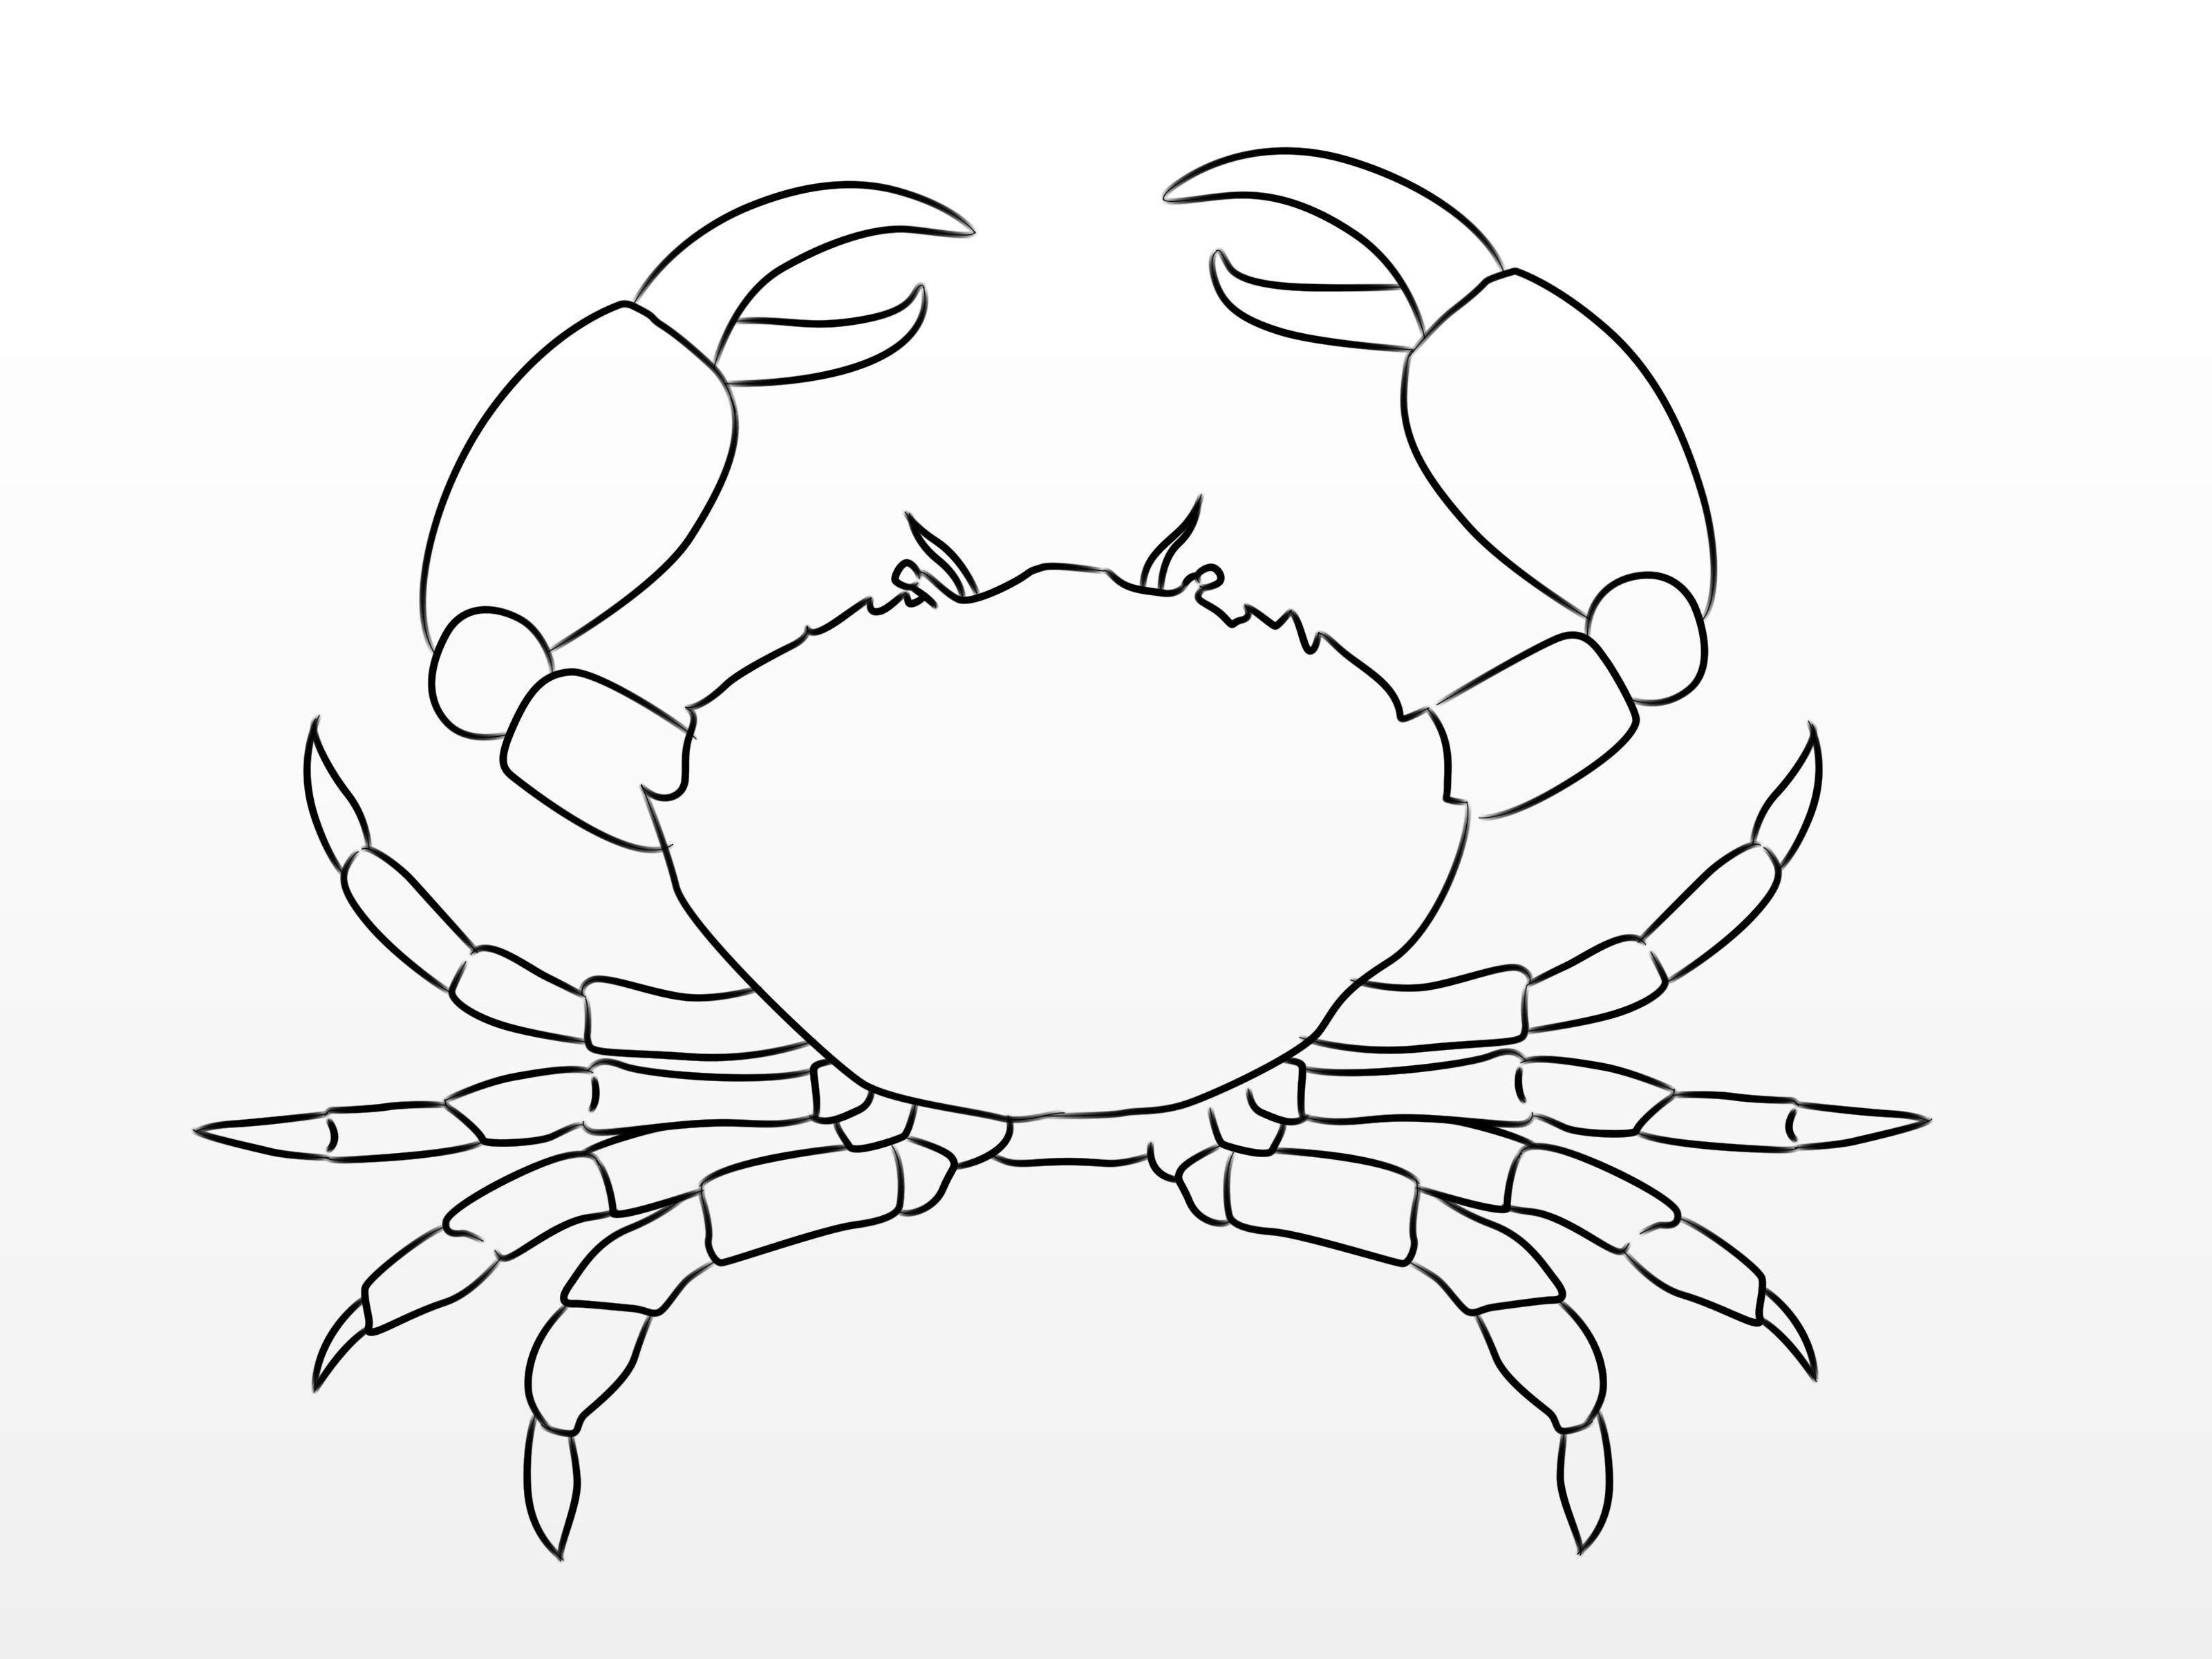 How To Draw A Crab Via WikiHow